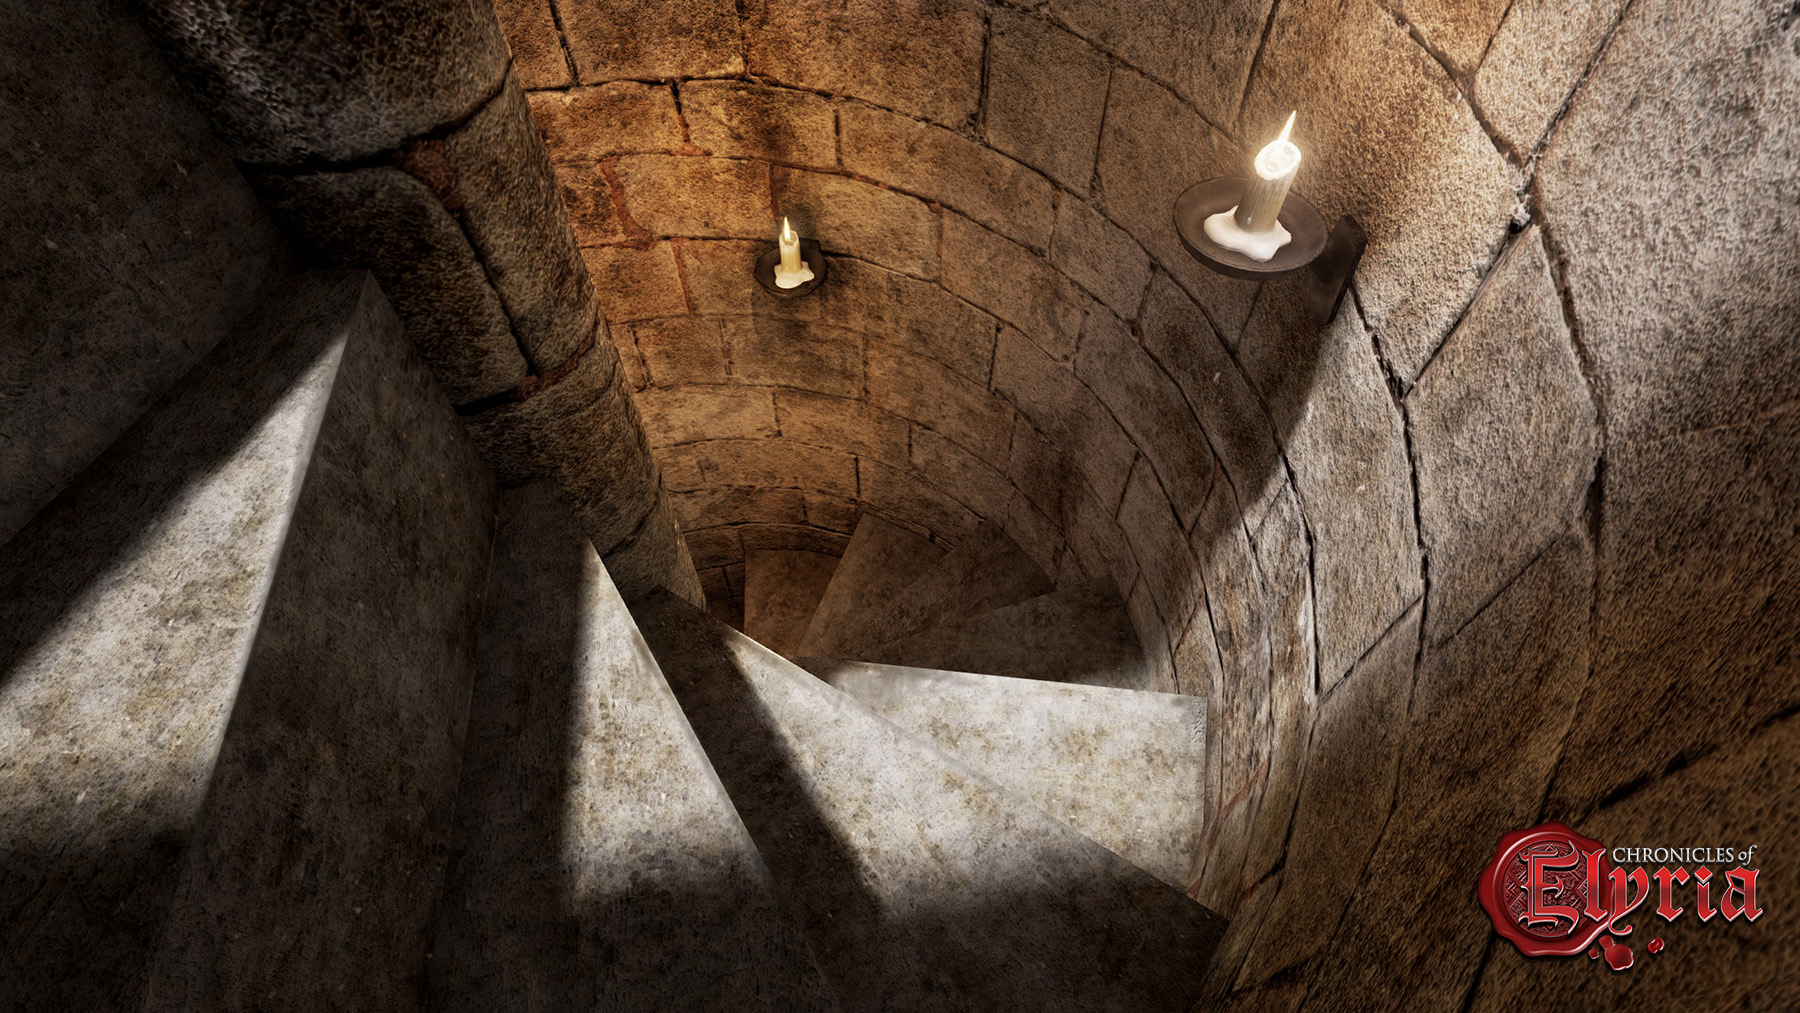 In-game screenshot of a straircase leading into a basement